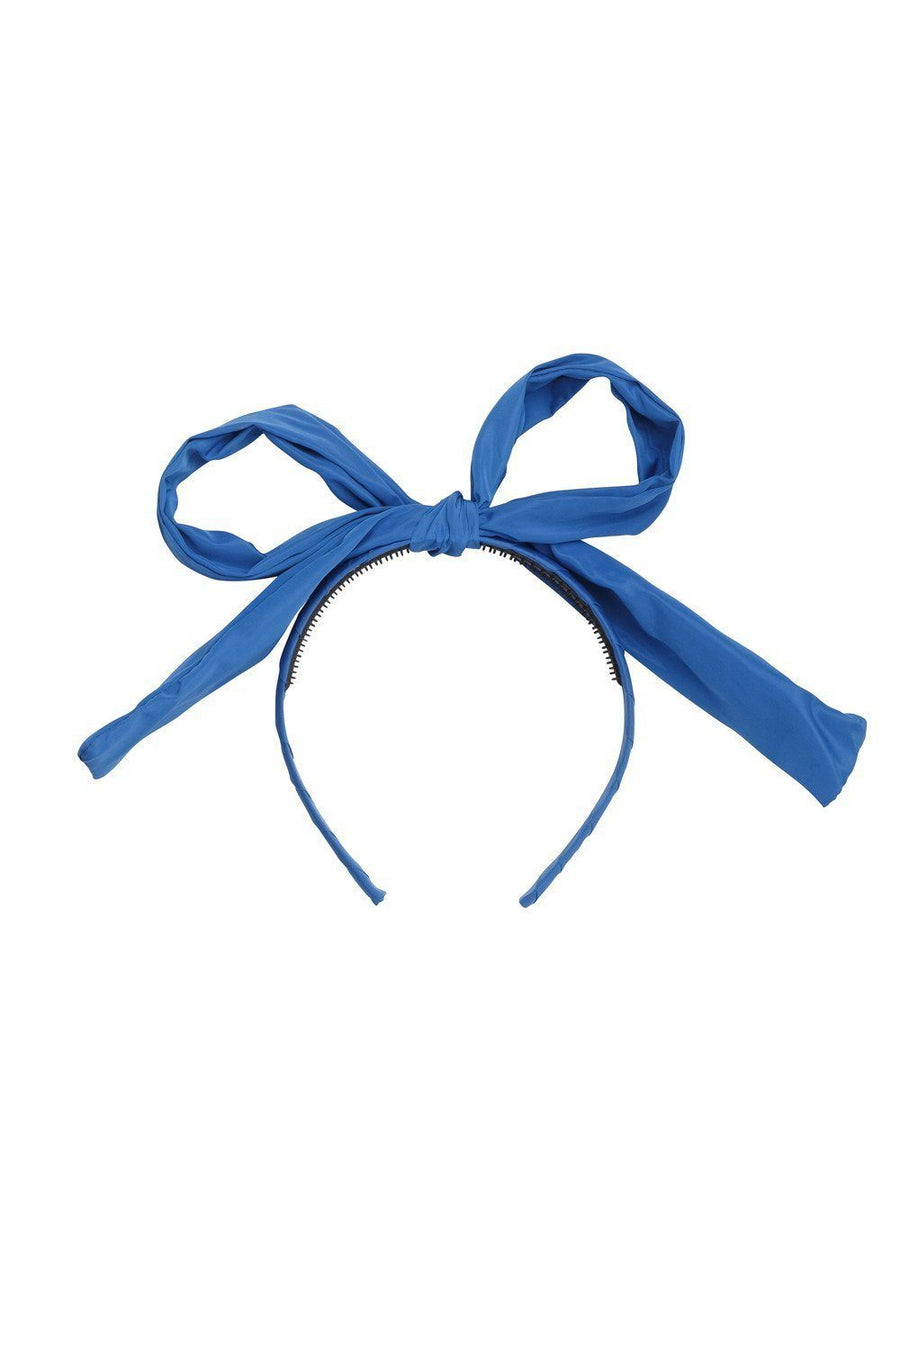 Party Bow Taffeta - Royal Blue - PROJECT 6, modest fashion